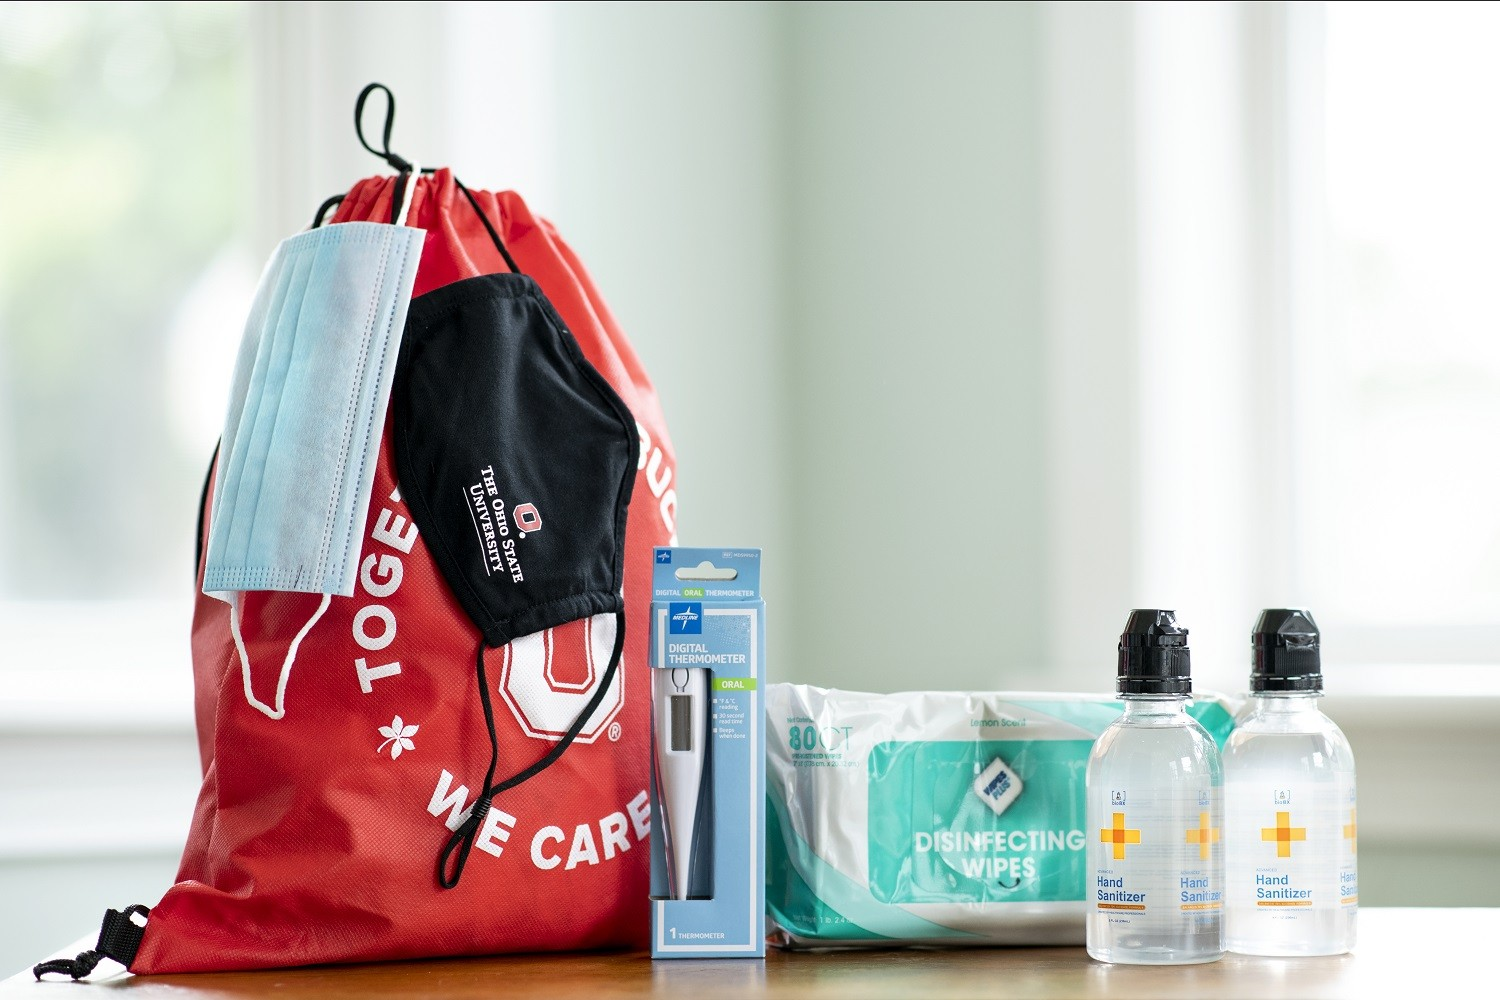 Return to campus kits for students faculty and staff